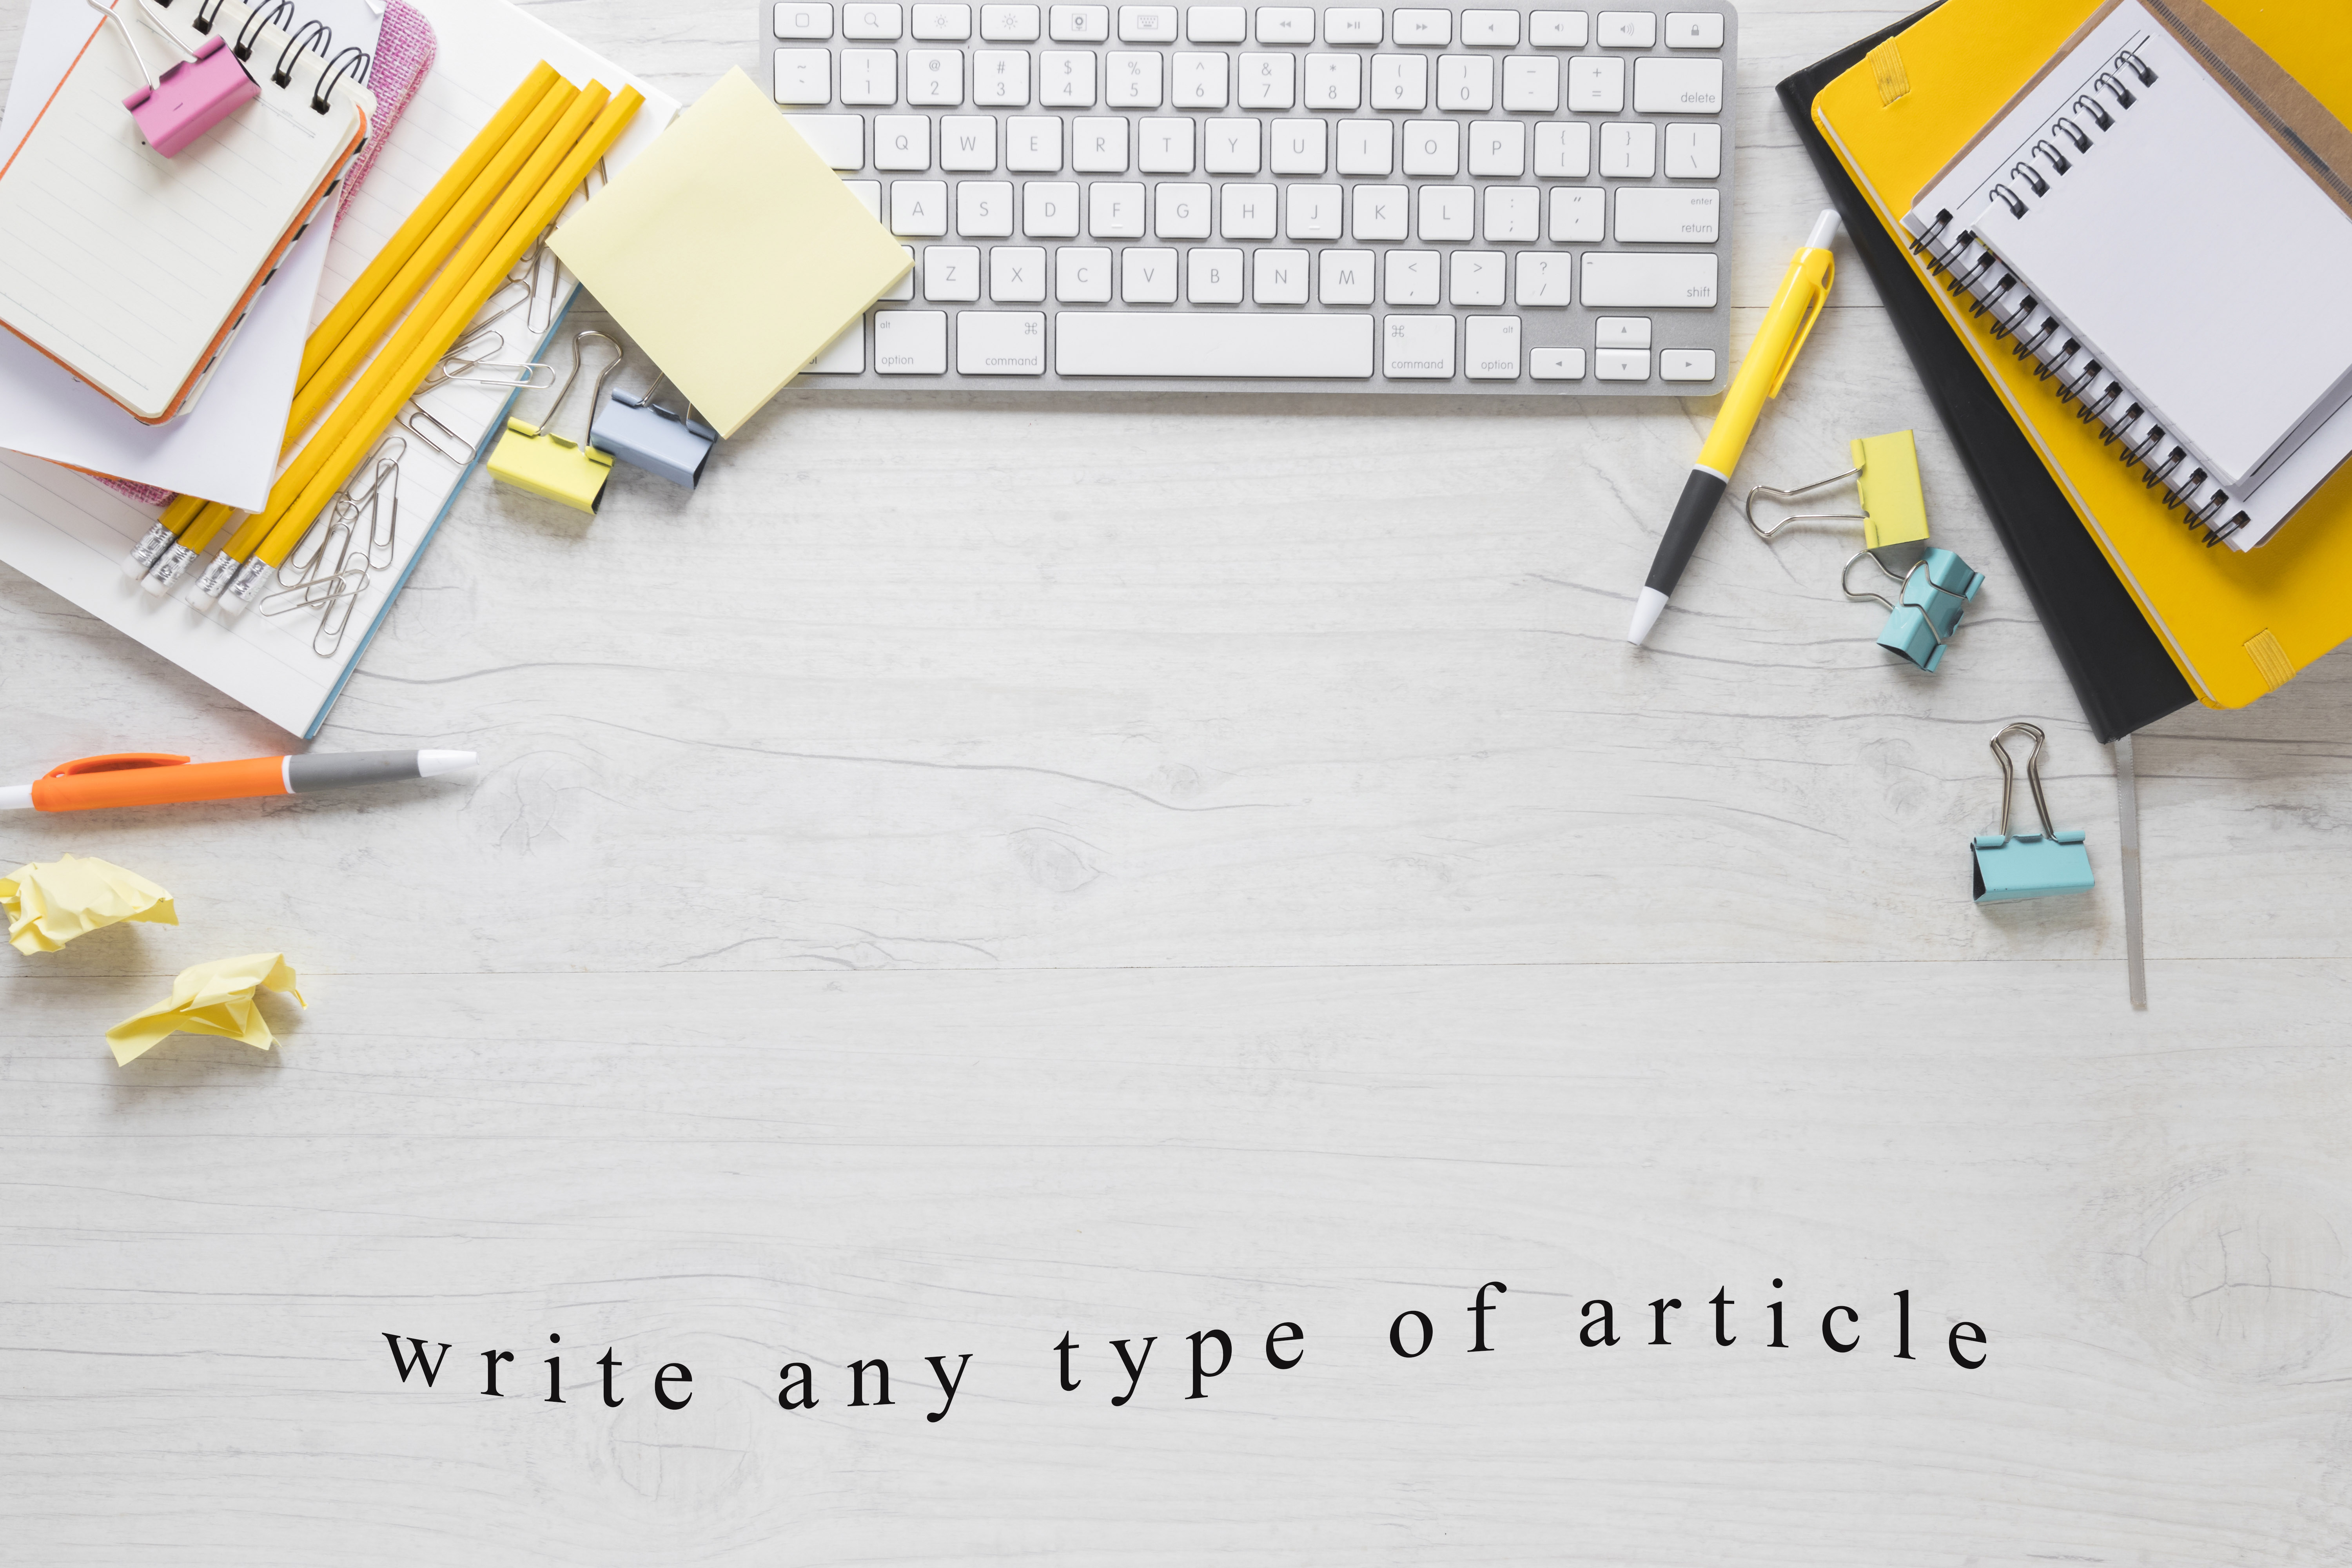 Write any type of article for you